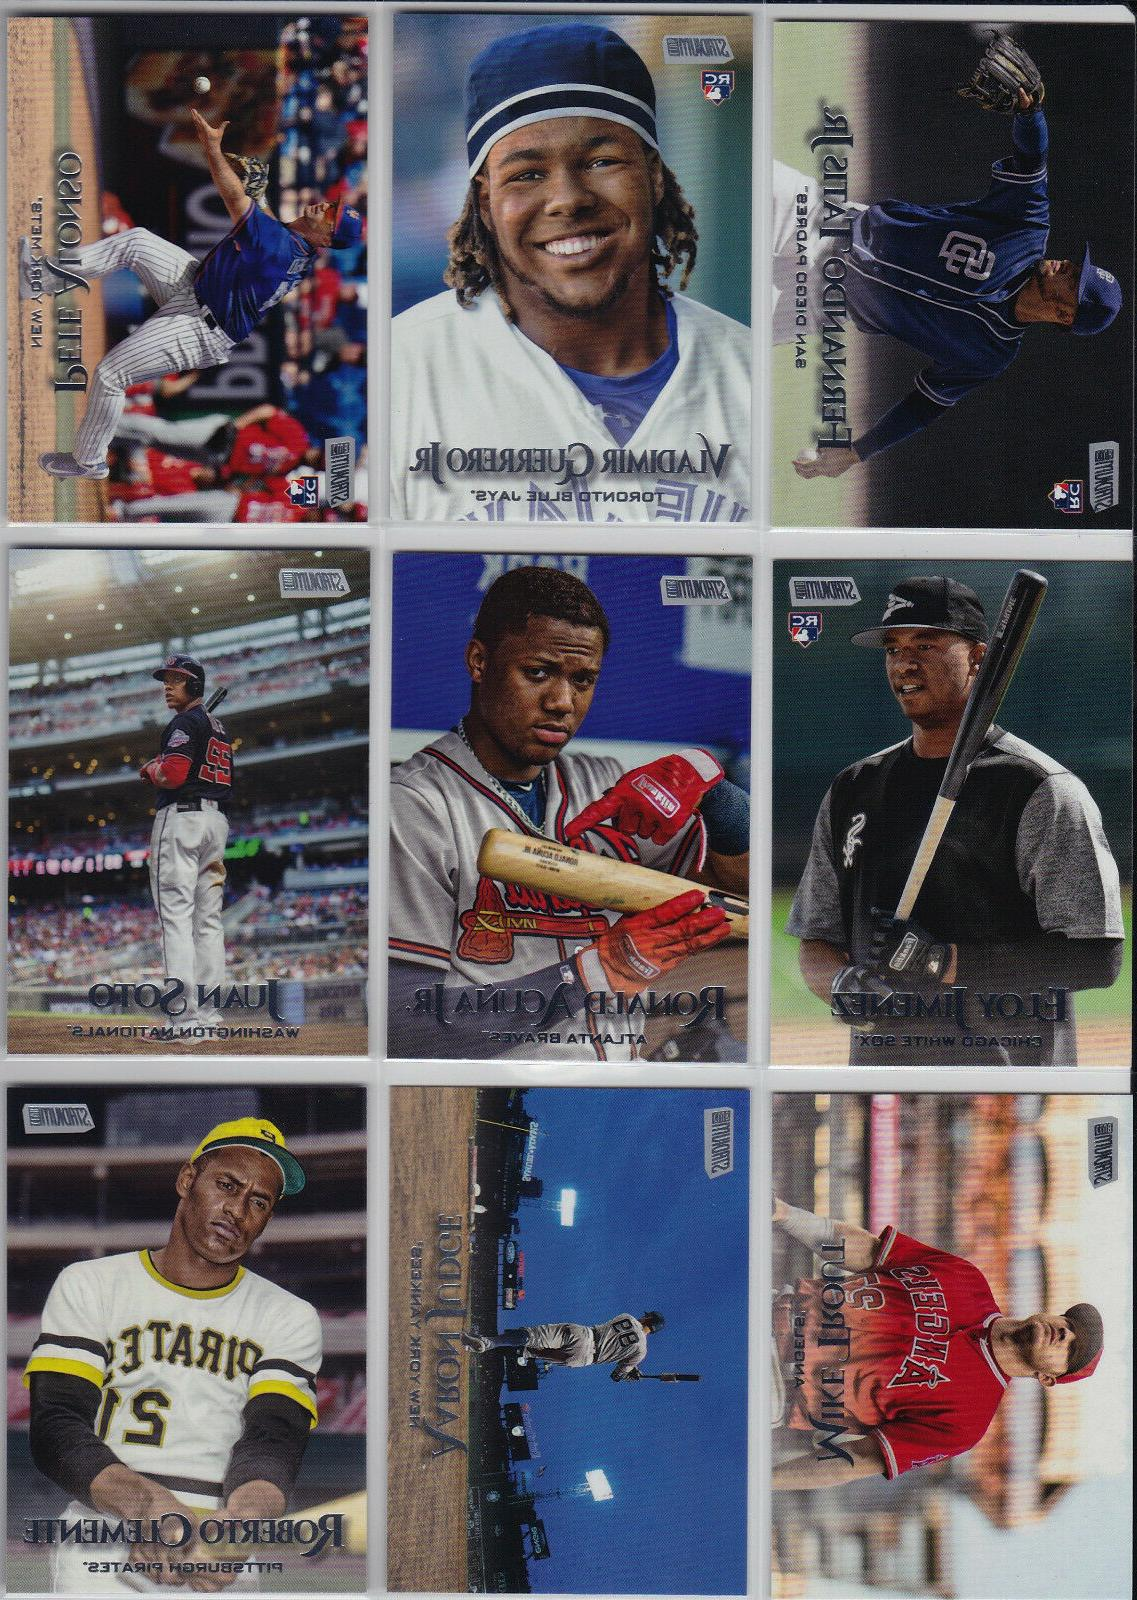 2019 topps stadium club complete base set